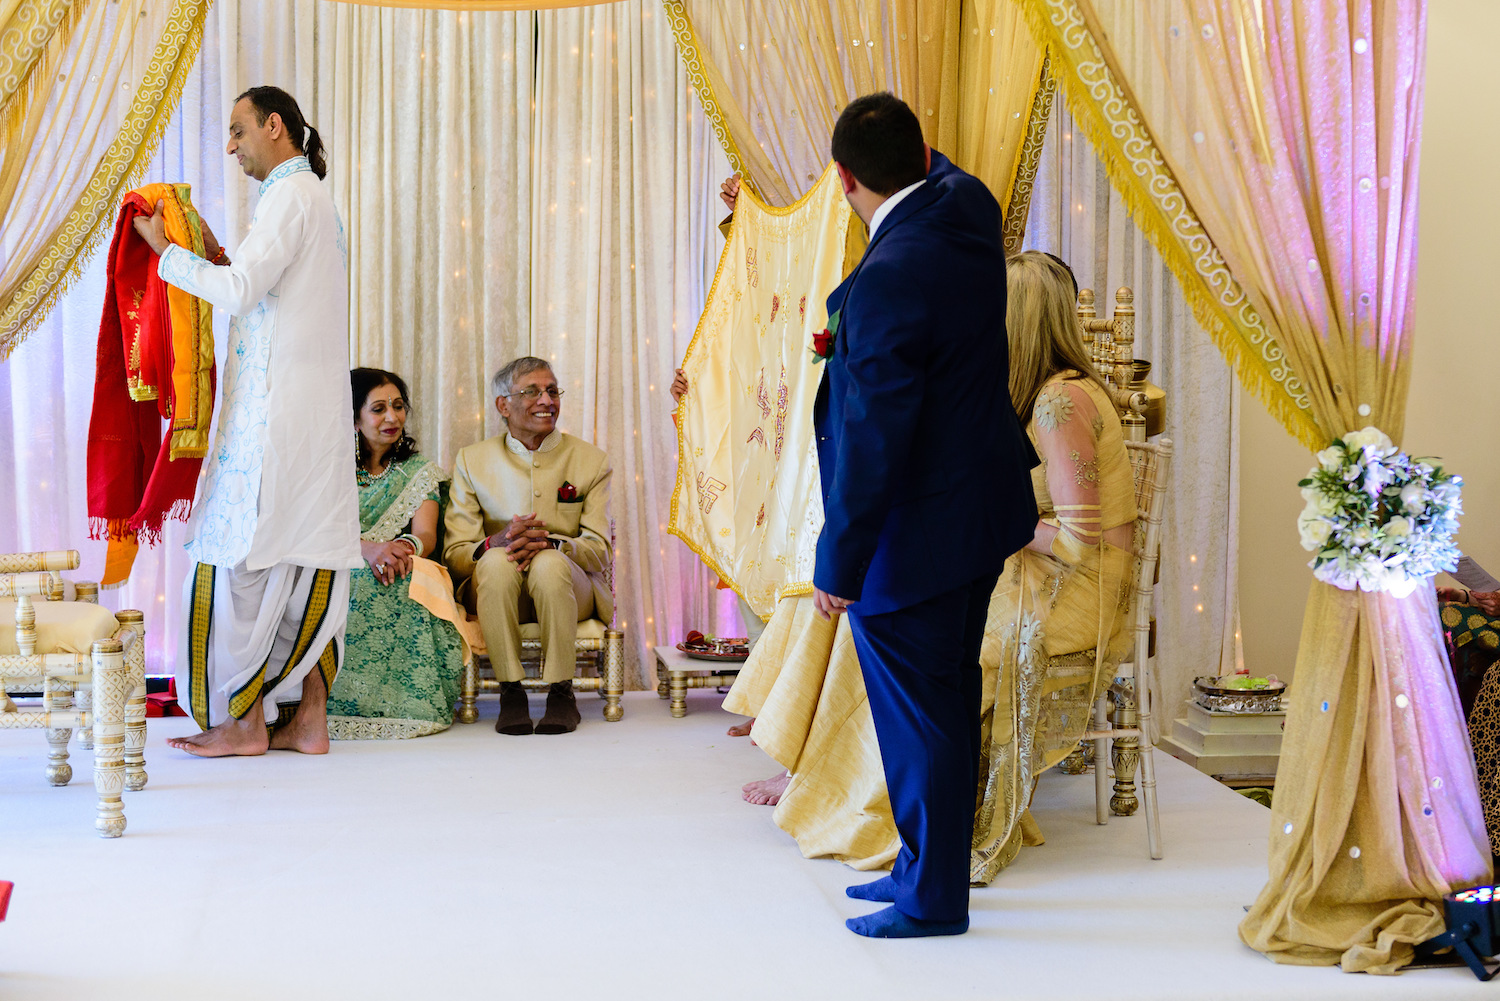 Wedding guests sit pre Indian wedding ceremony